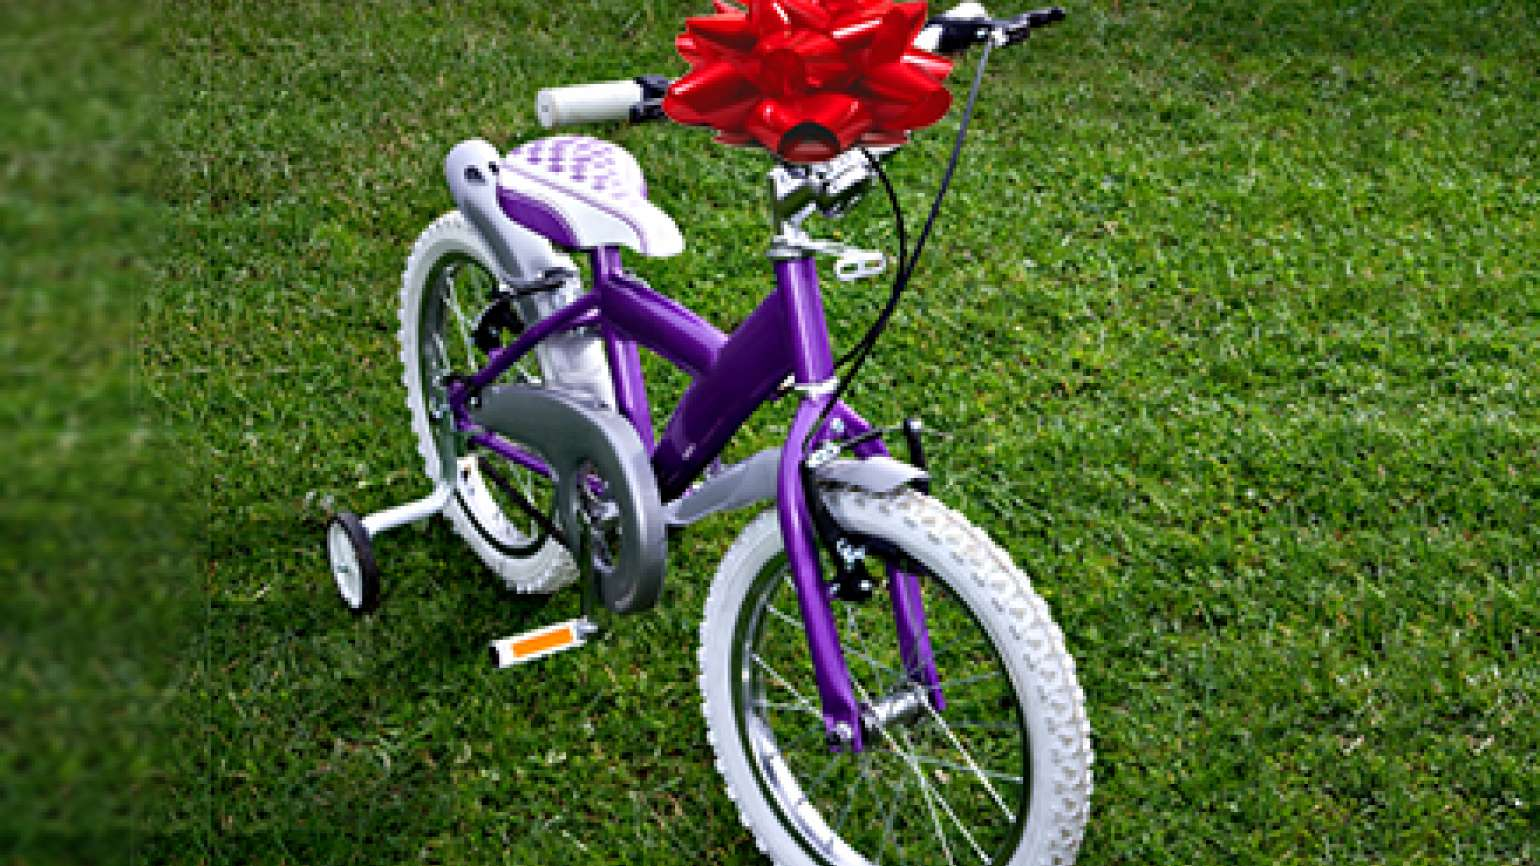 A girl's bike with a large red bow